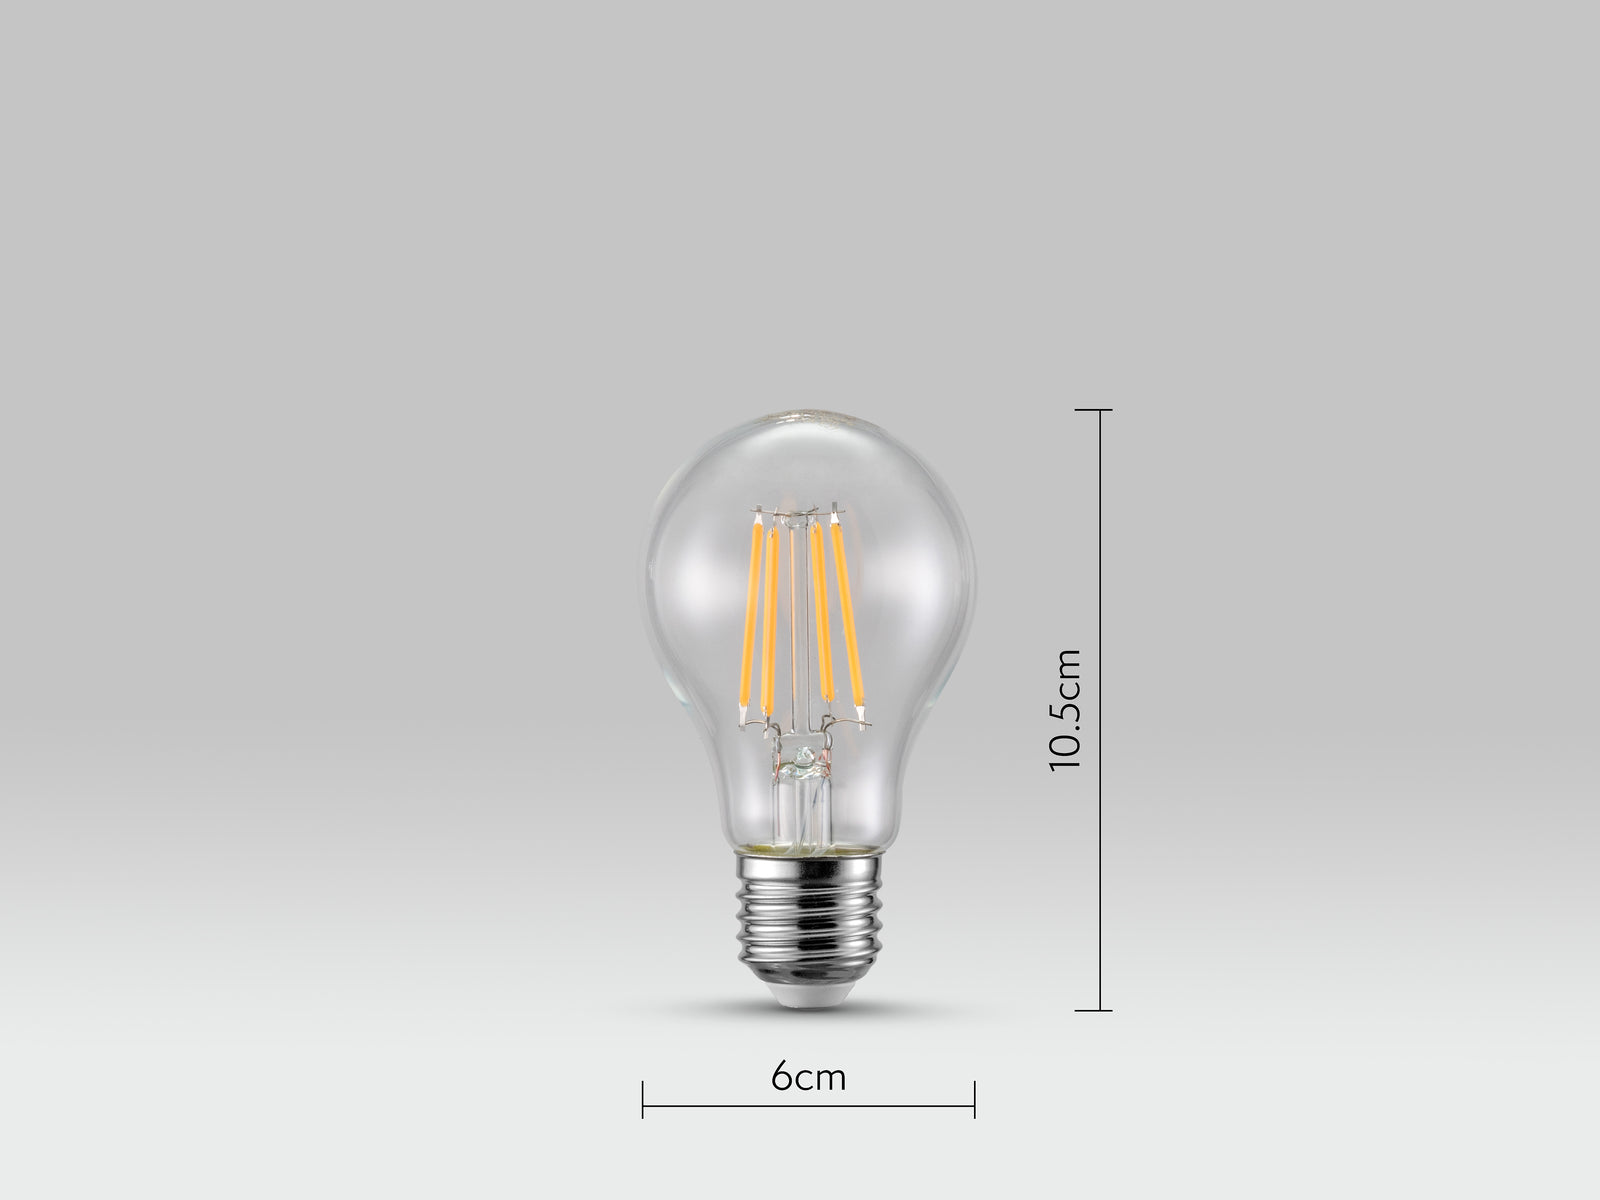 Es led 4w bulb | dimensions | houseof.com